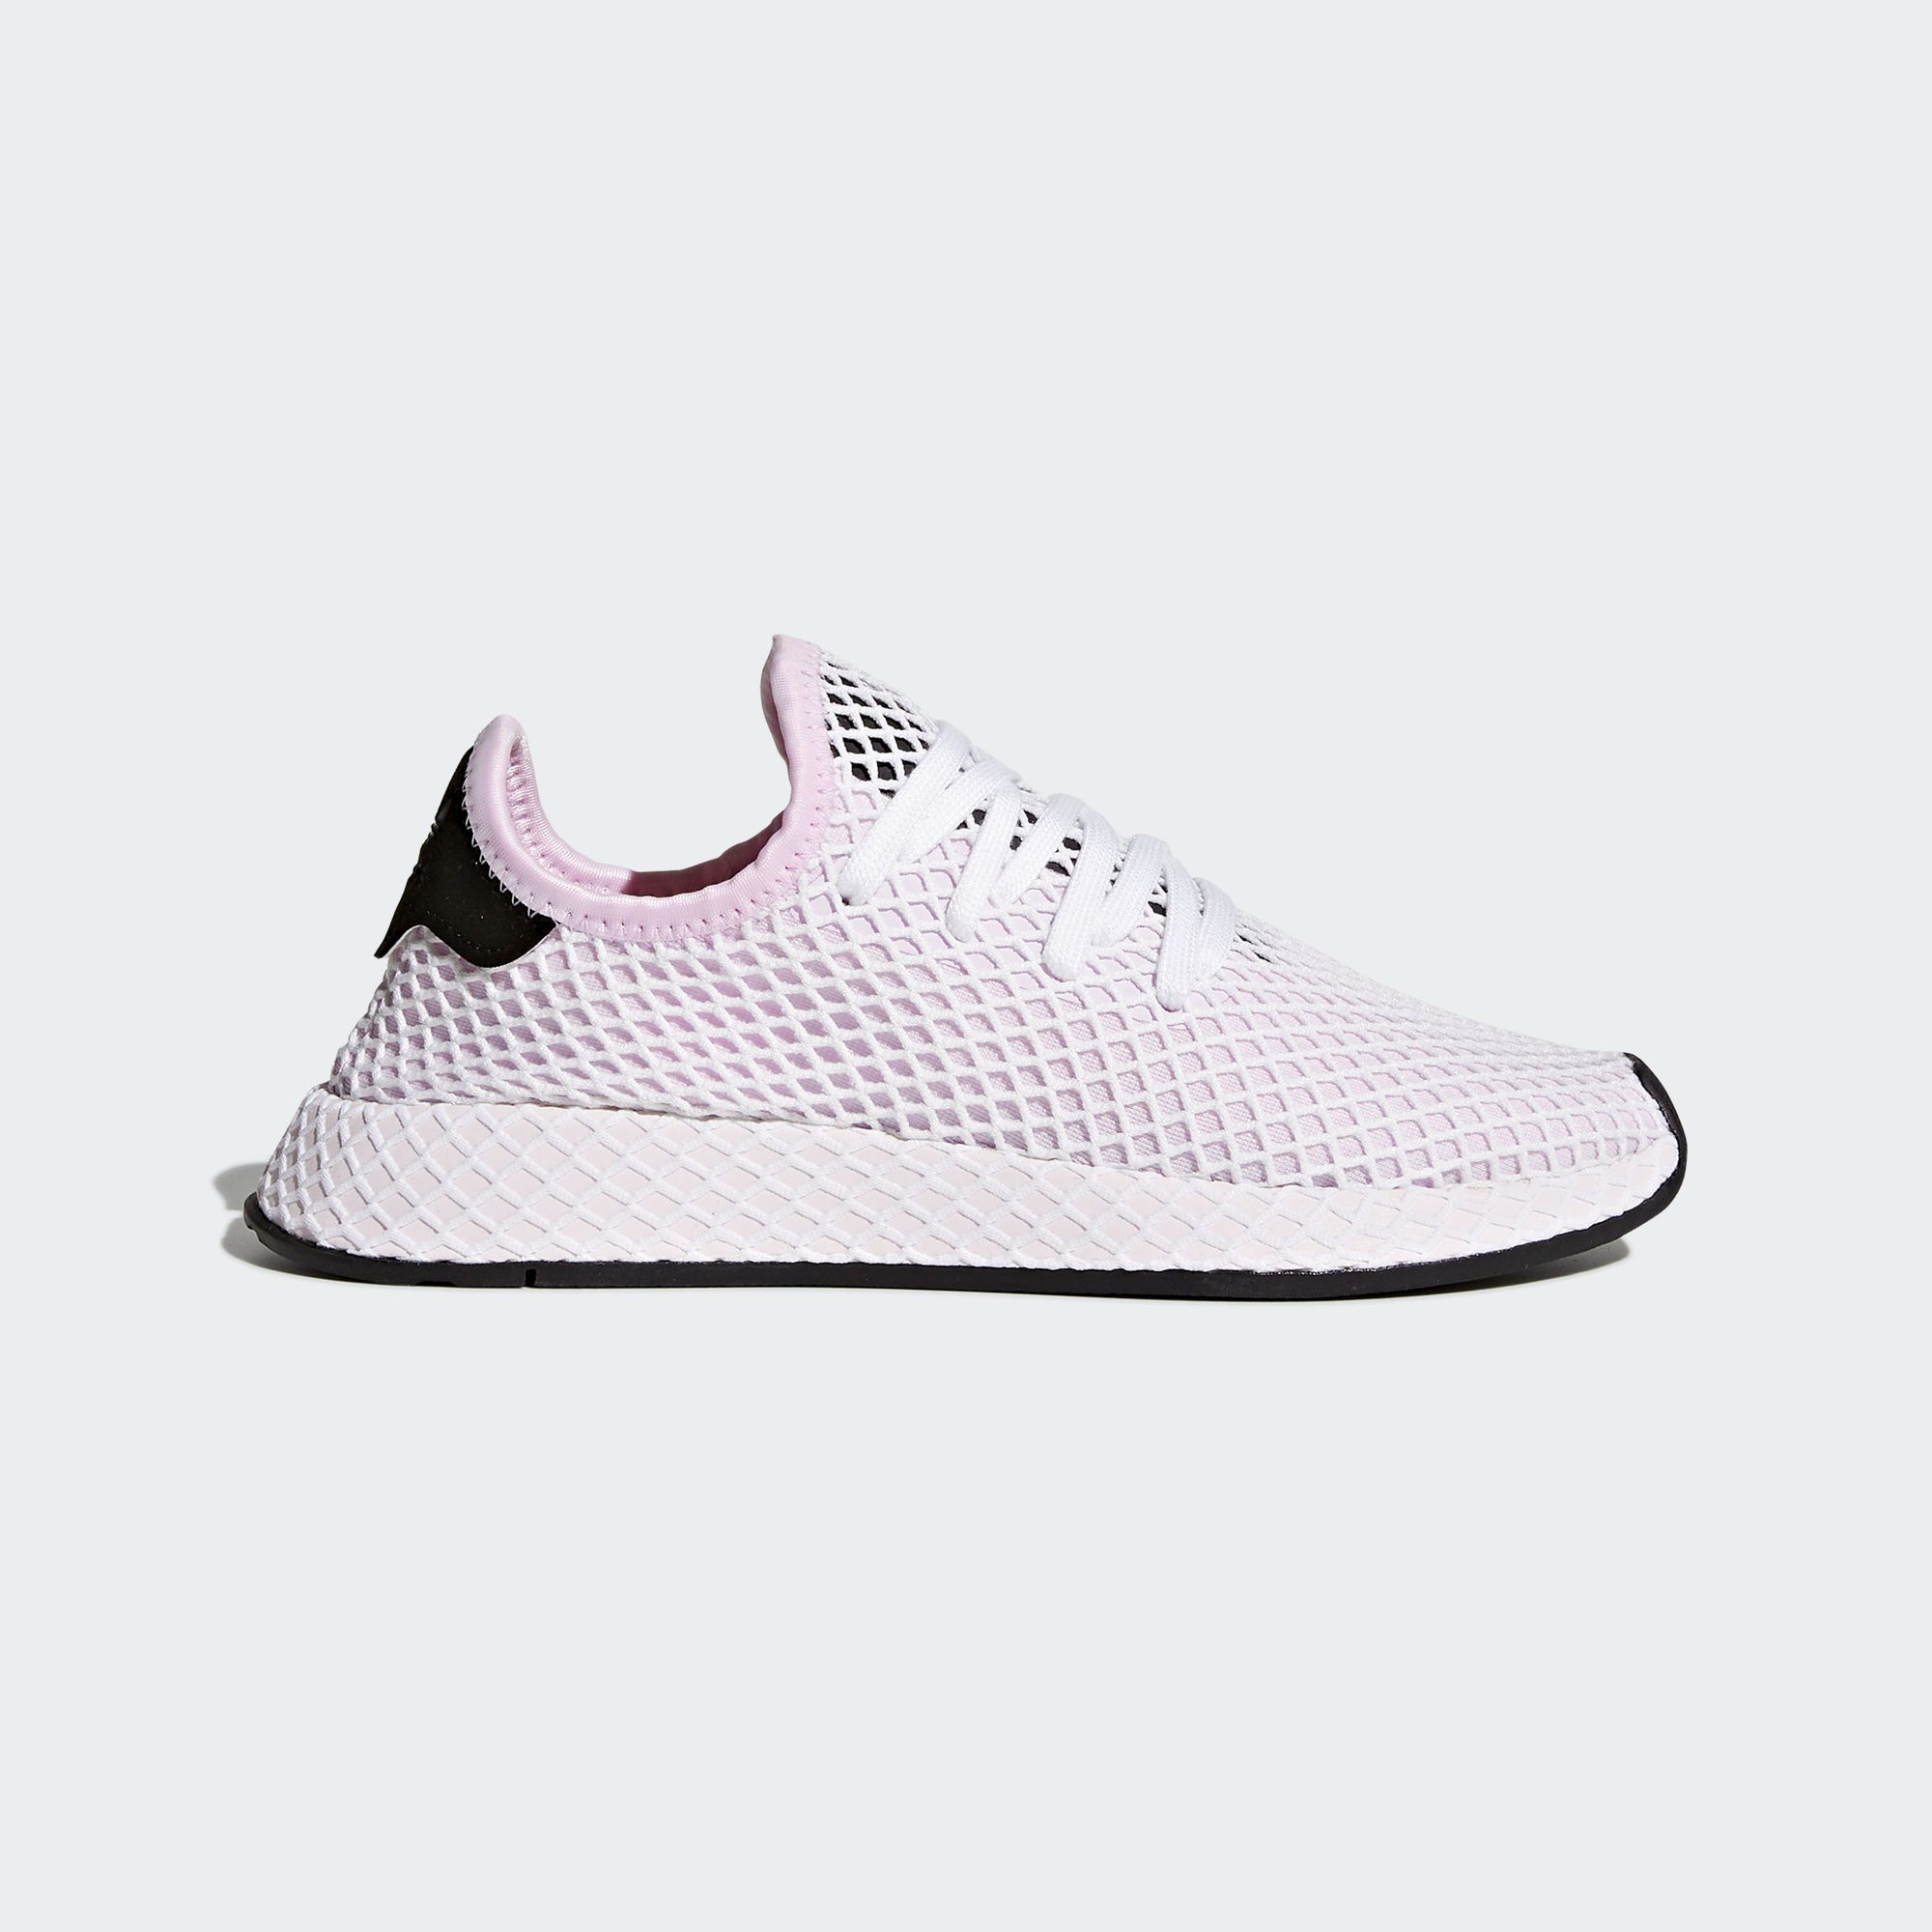 online store eabb7 6f00b Shop the Deerupt Runner Shoes - Pink at adidas.com us! See all the styles  and colors of Deerupt Runner Shoes - Pink at the official adidas online shop .